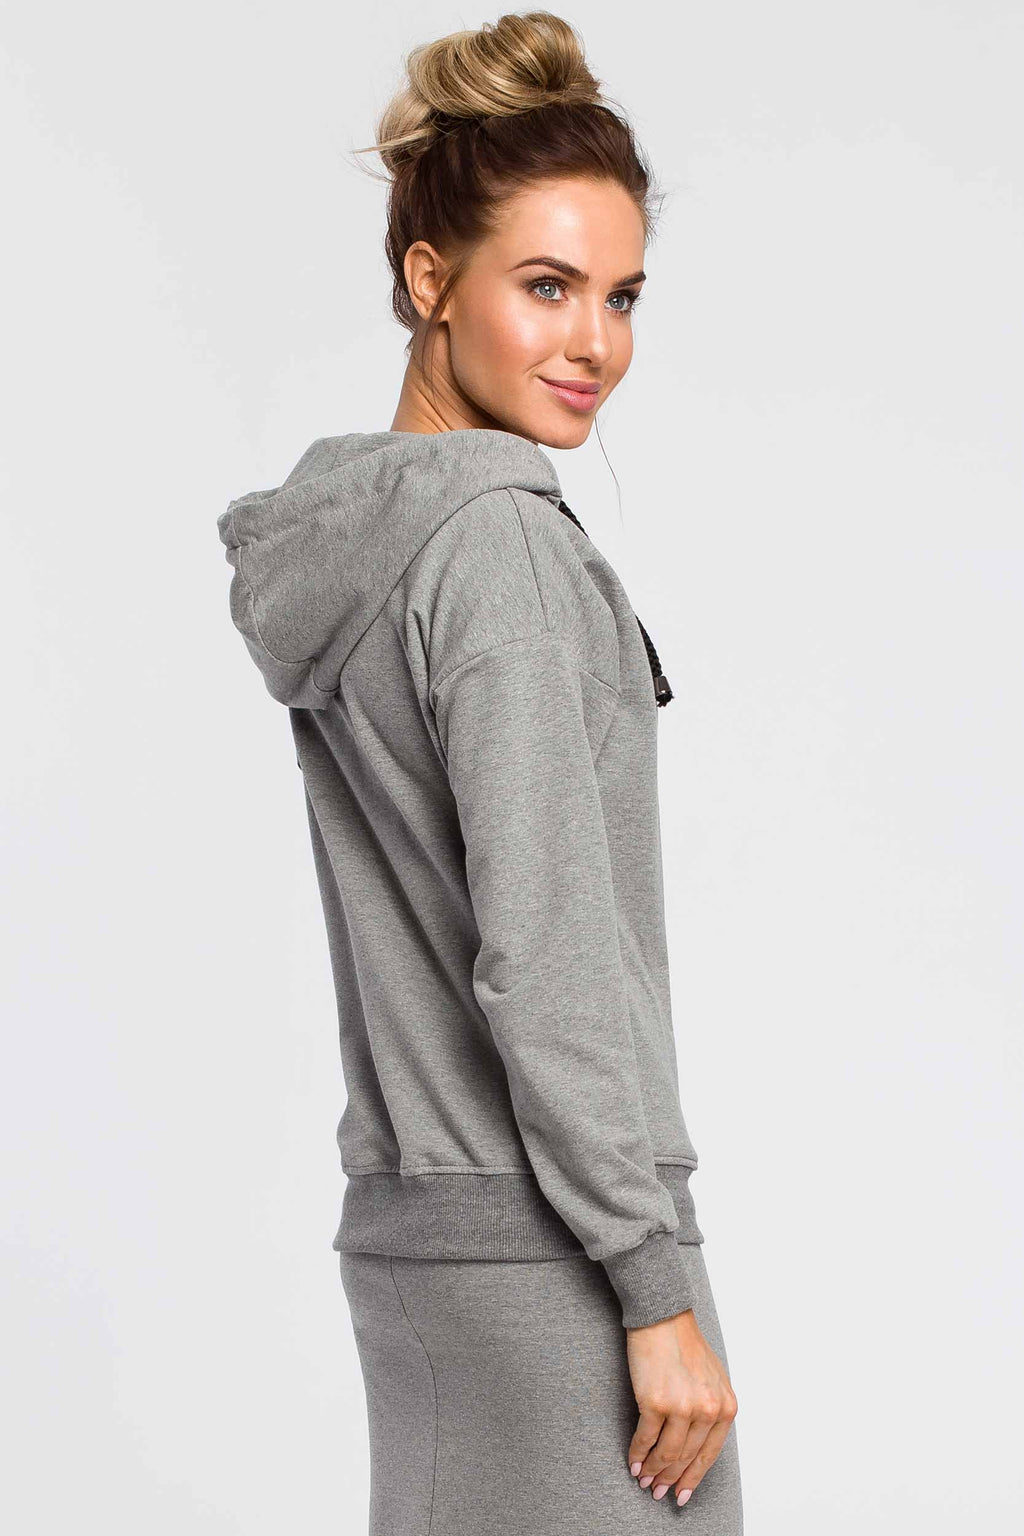 Grey Zip Up Hoodie - So Chic Boutique